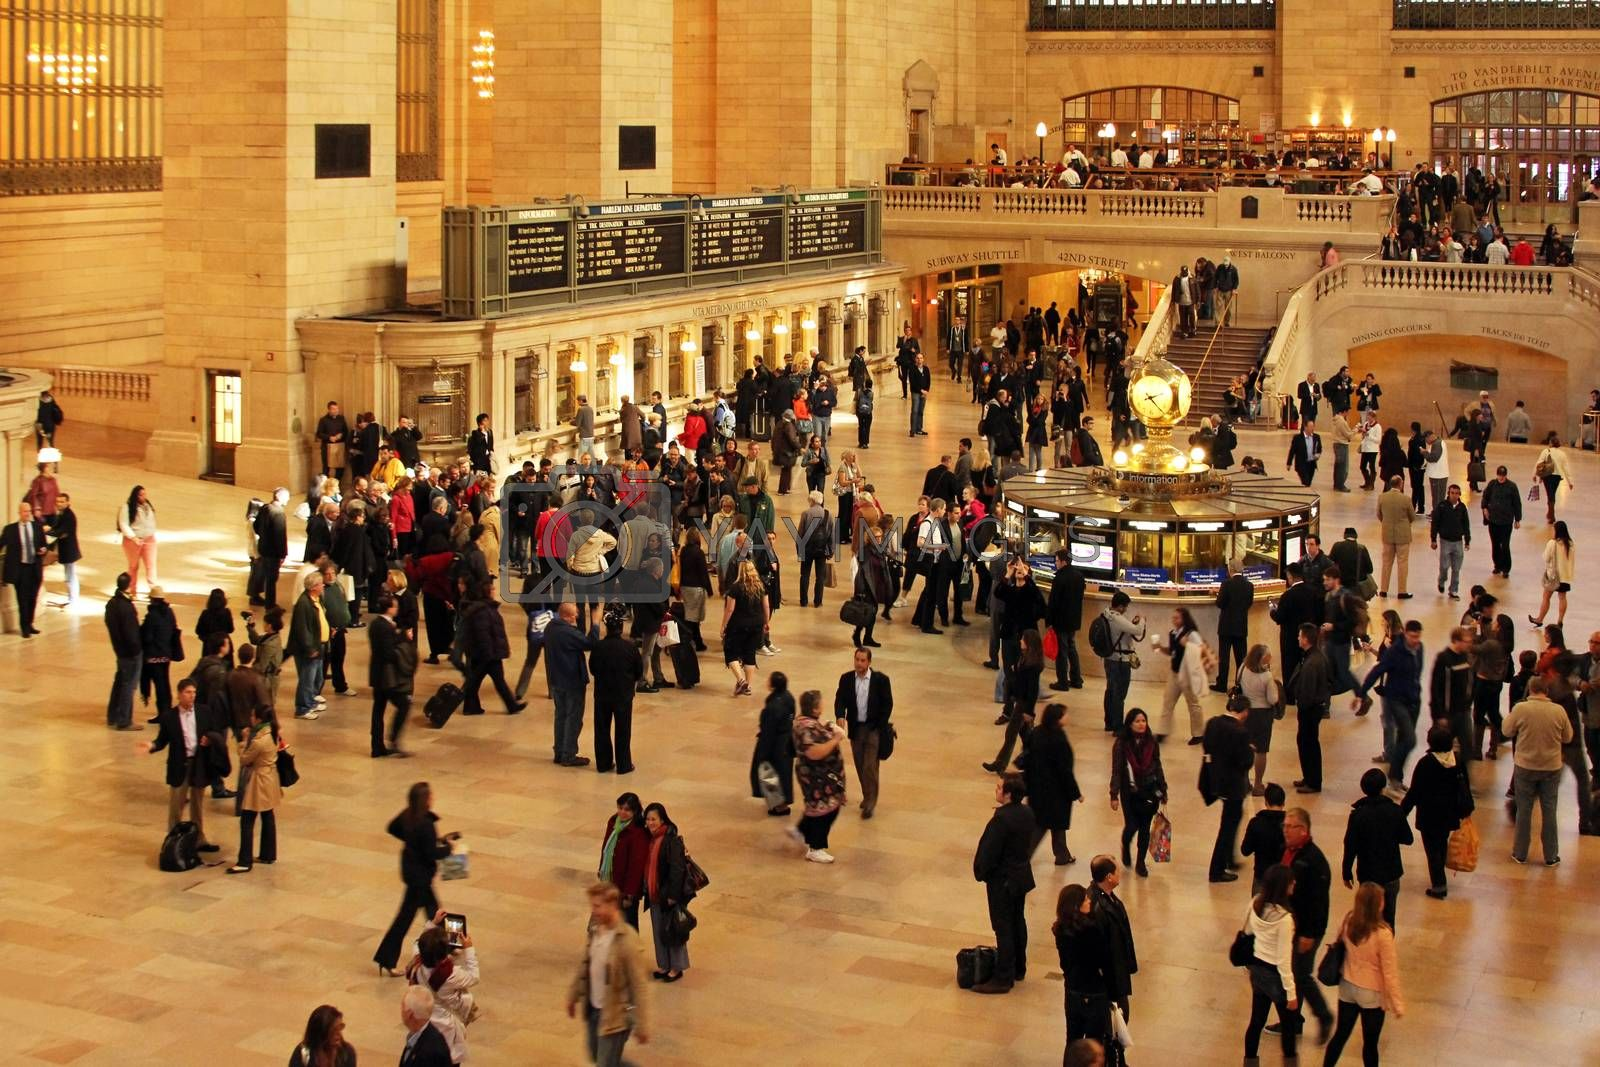 New York, USA - October12, 2012: Interior of Grand Central Station in New York. The terminal is the largest train station in the world by number of platforms having 44 in New York 12 October, 2012